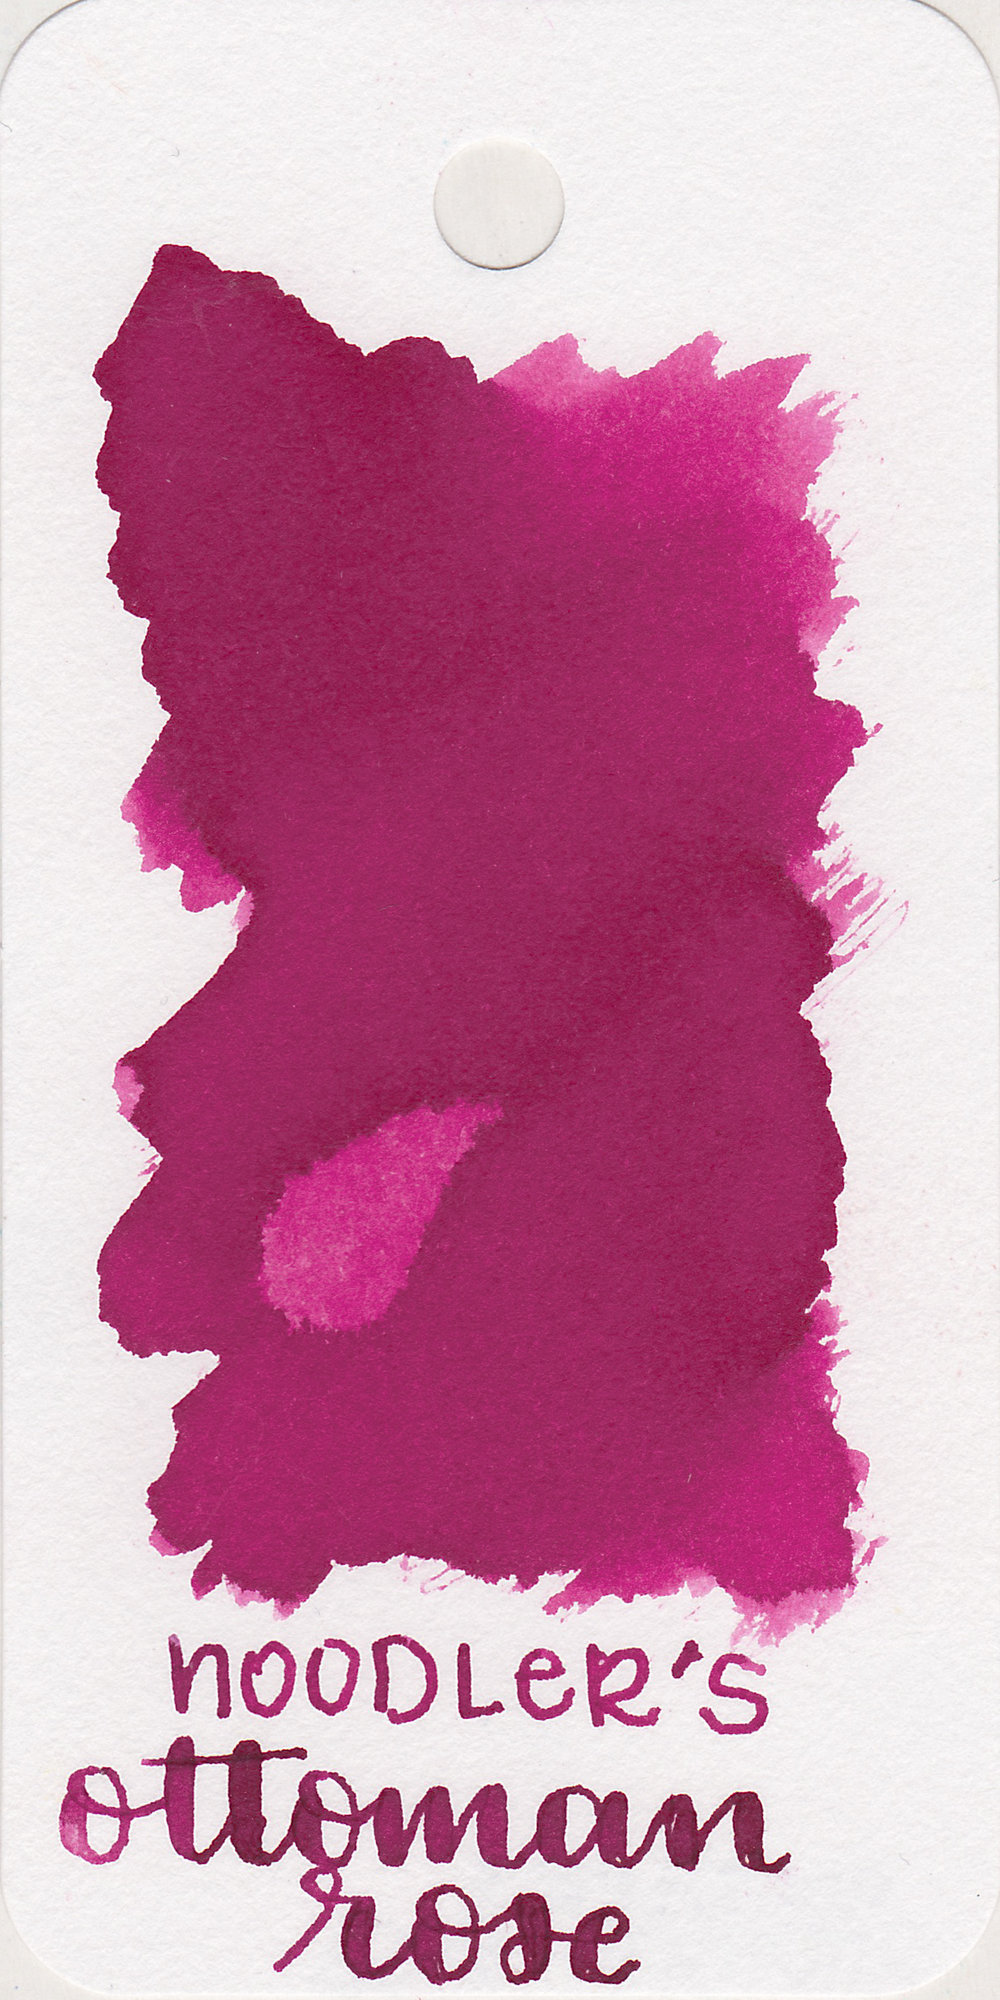 The color: - Ottoman Rose is a deep magenta pink.